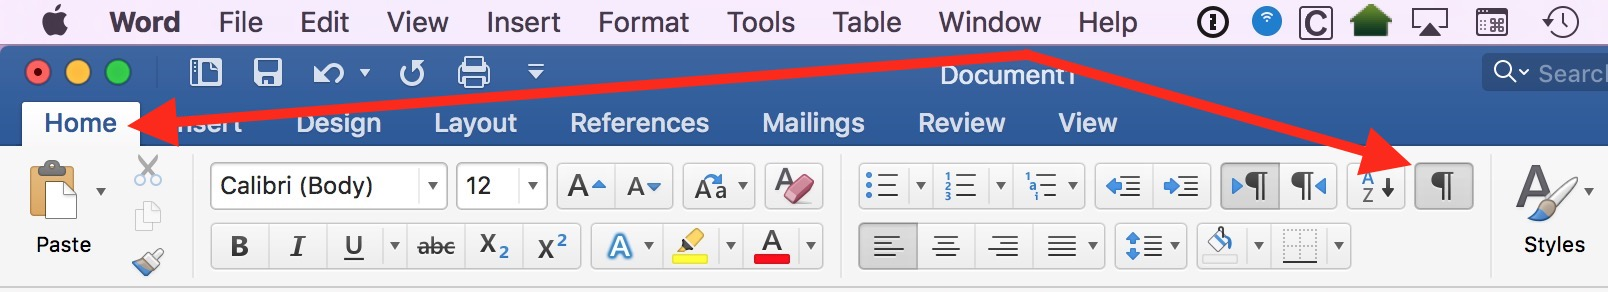 Home Tab in Word shows the Paragraph button, which shows or hides invisible characters (nonprinting characters)